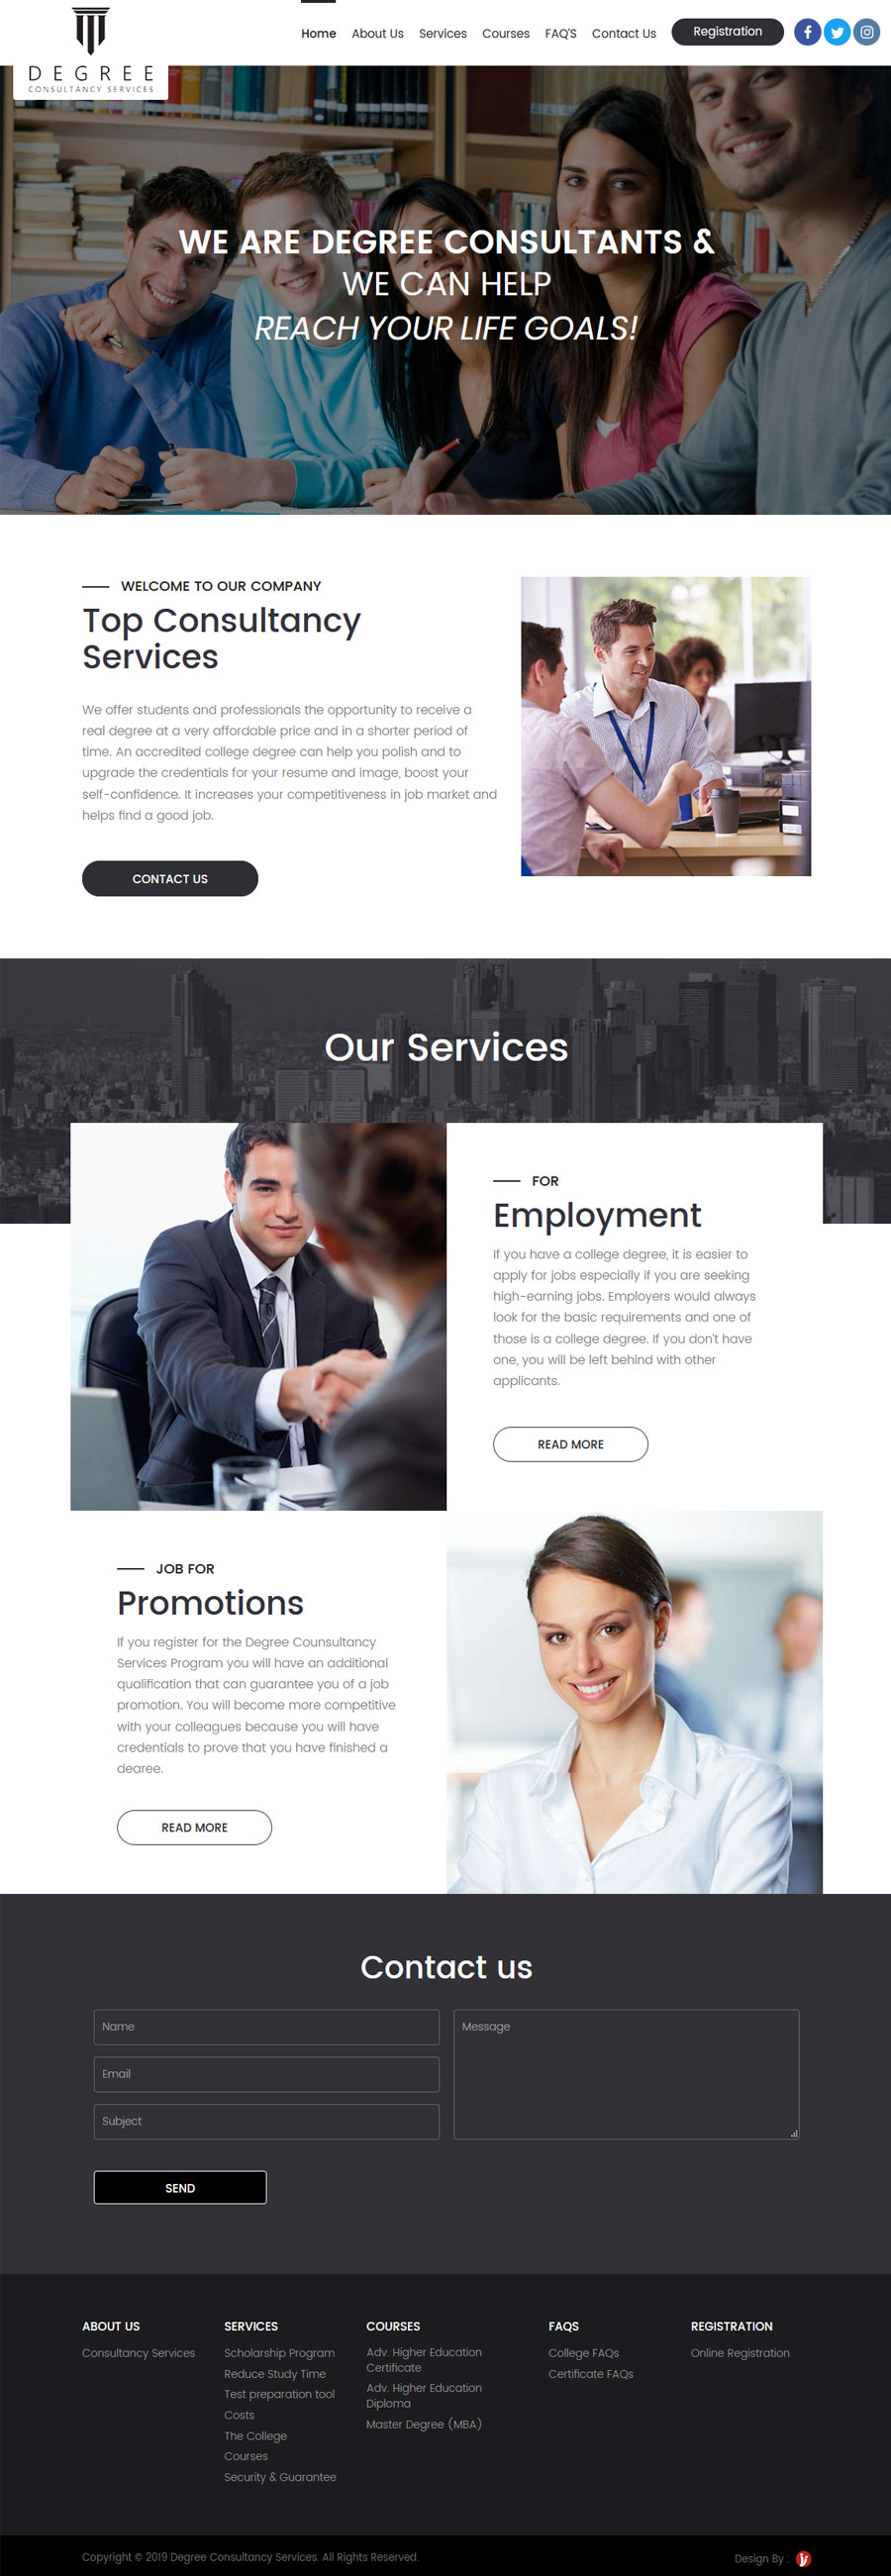 Degree Consultancy Services